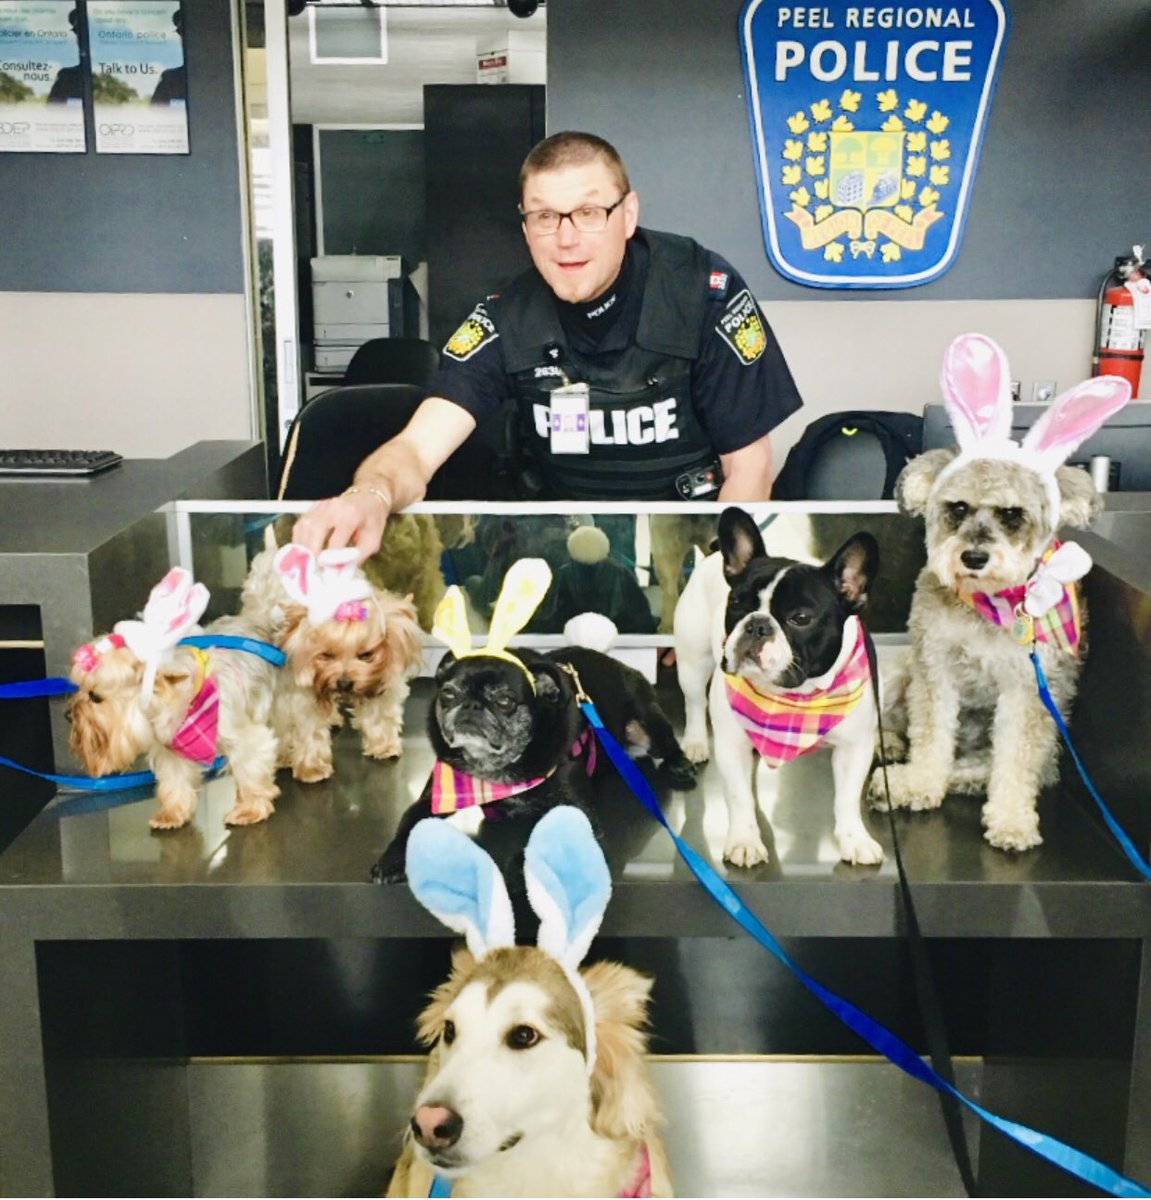 """Ridiculously cute Easter bunnies invaded the @TorontoPearson @PeelPoliceMedia Kiosk at #YYZ this afternoon! Middle second row I've personally named """"Smiley"""".... @peel_pa @TheYogaCop @officermooken @Coutorocks10 @awip_on #happyeaster #easteroutfit #bunnylove #adorable<br>http://pic.twitter.com/aZZR5YYUR8"""